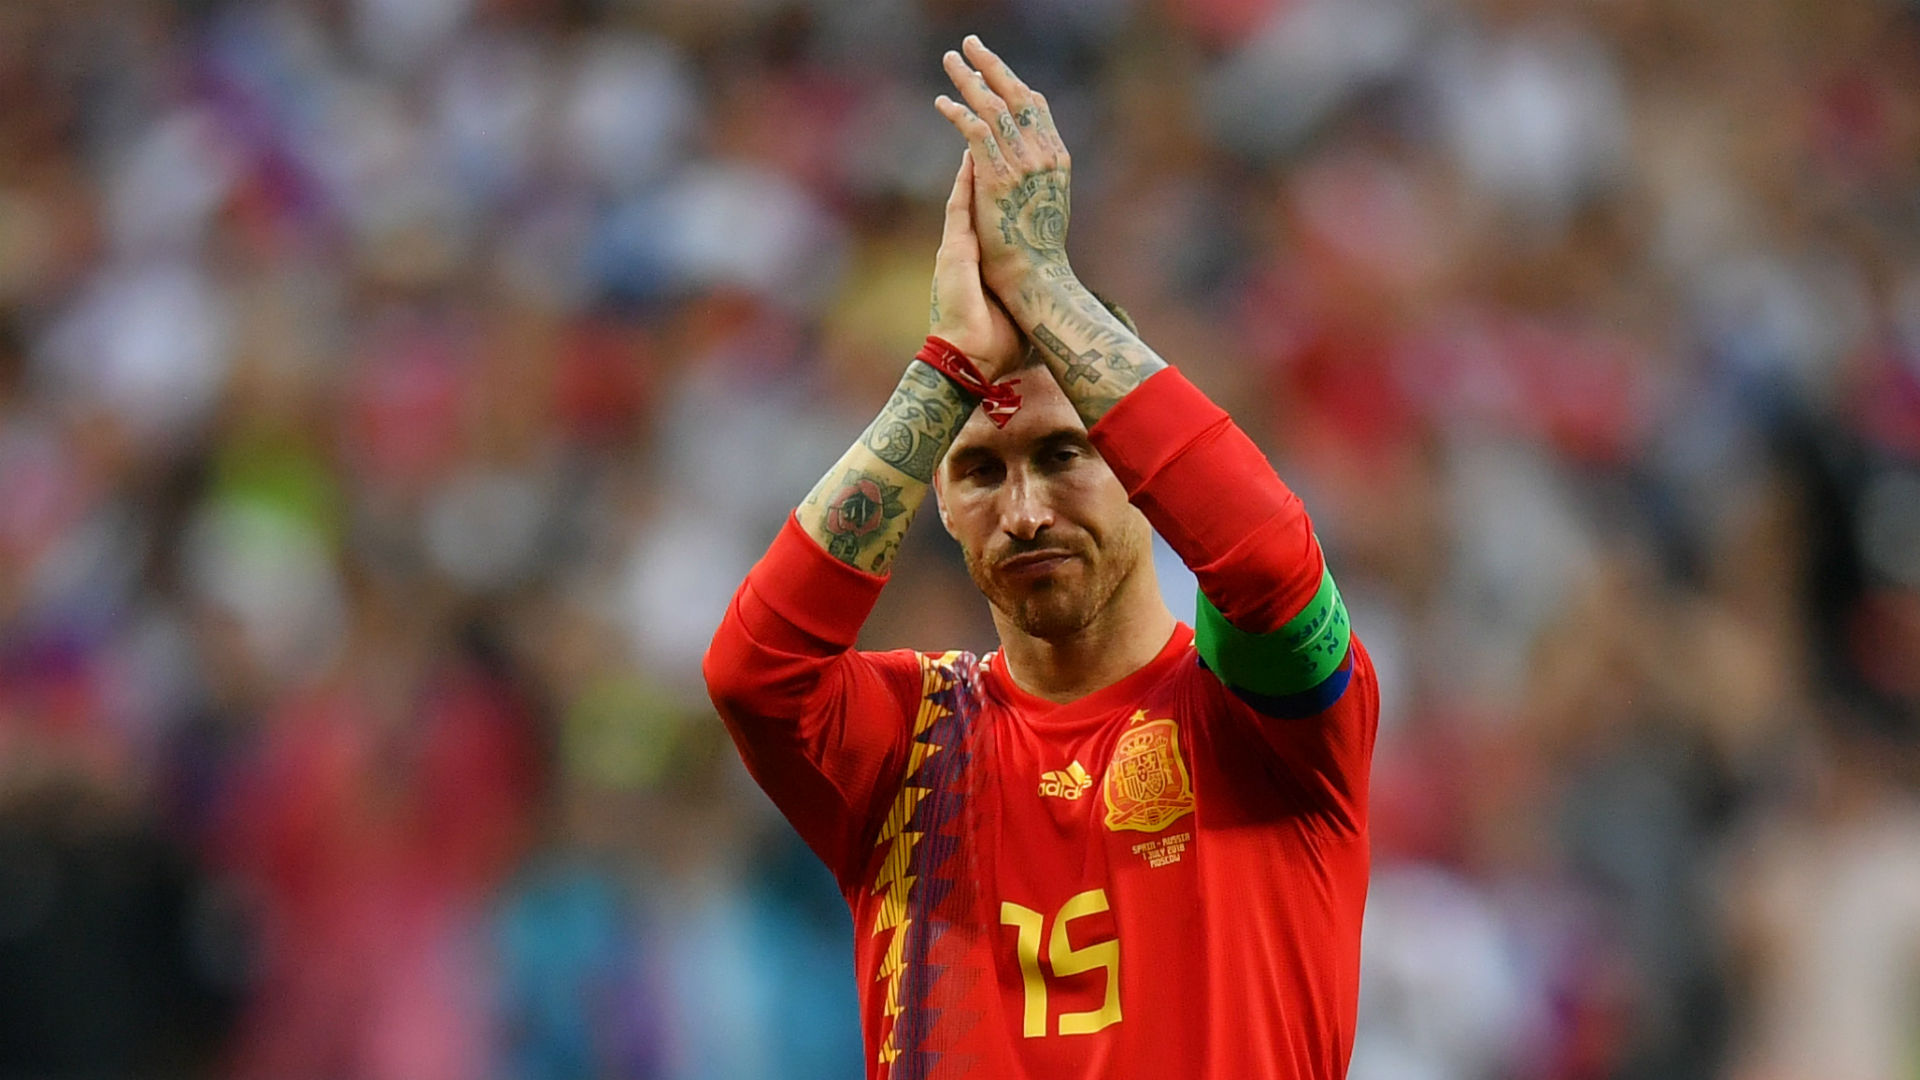 Sergio Ramos 'not concerned' about Mohamed Salah fallout